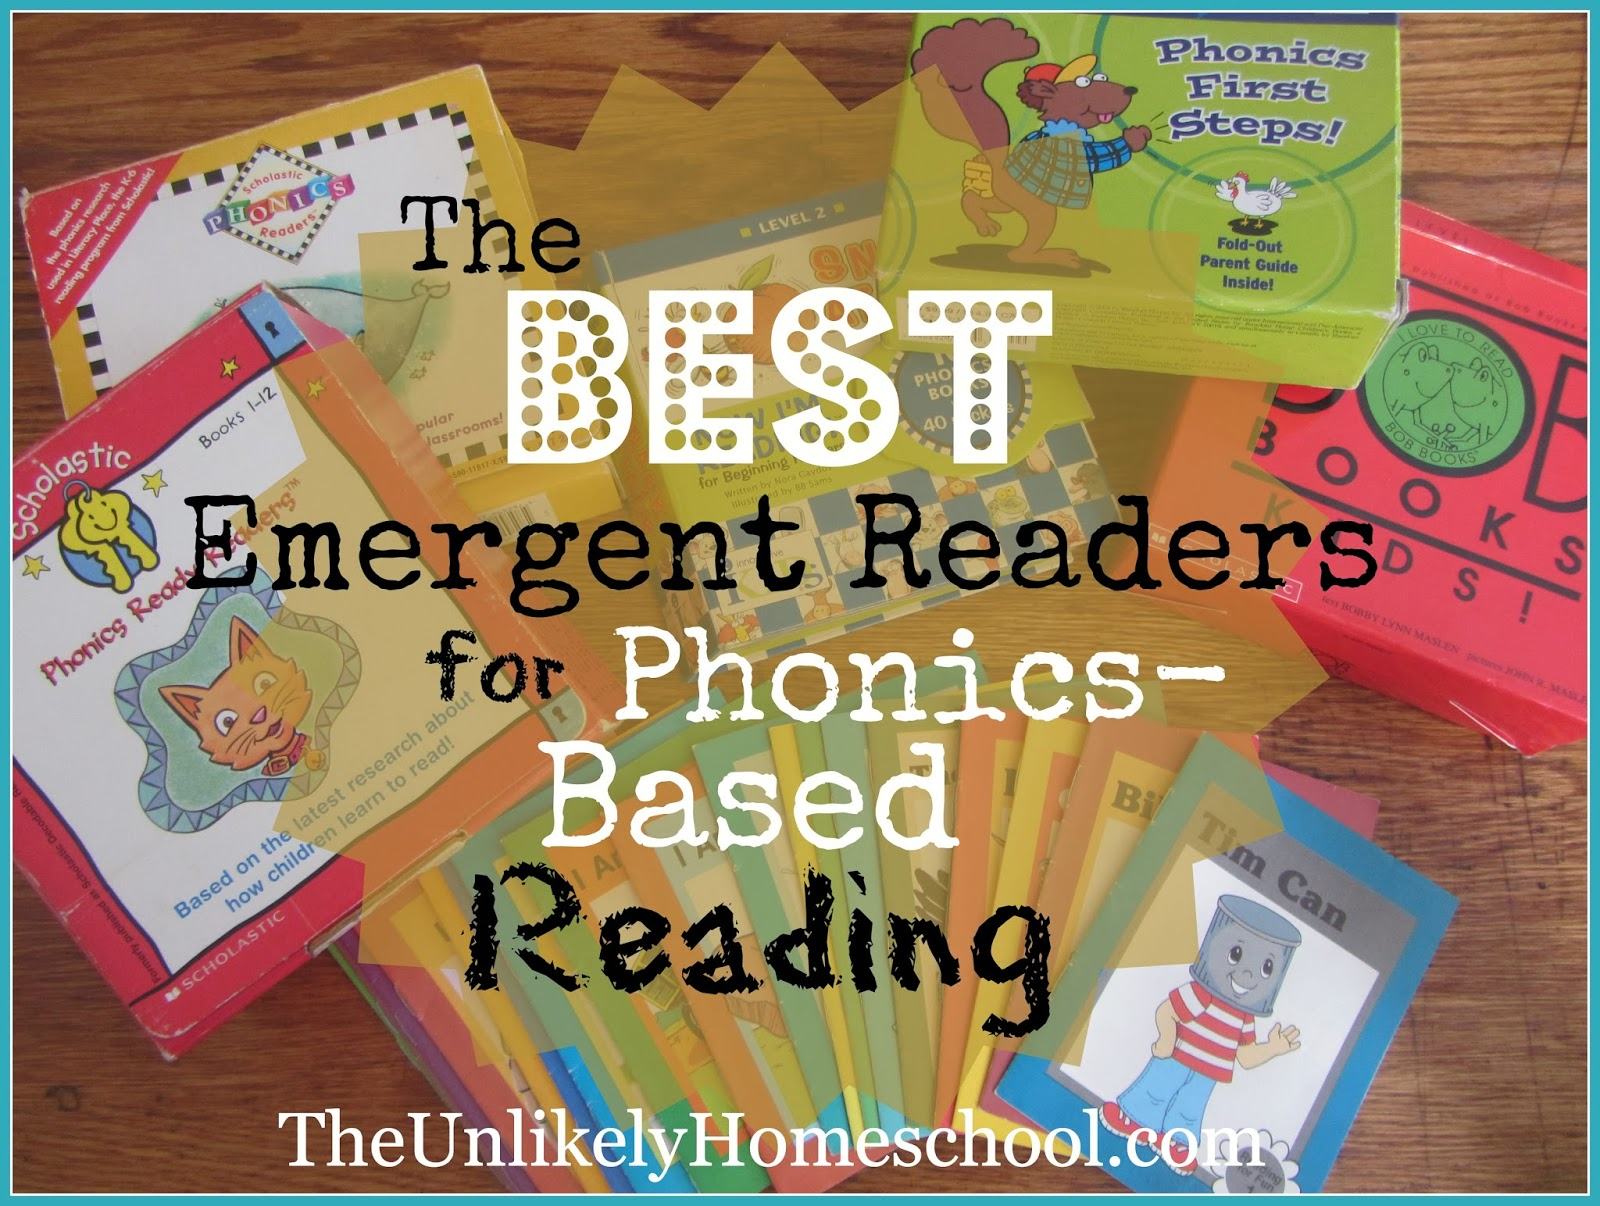 The Unlikely Homeschool: The BEST Emergent Readers for